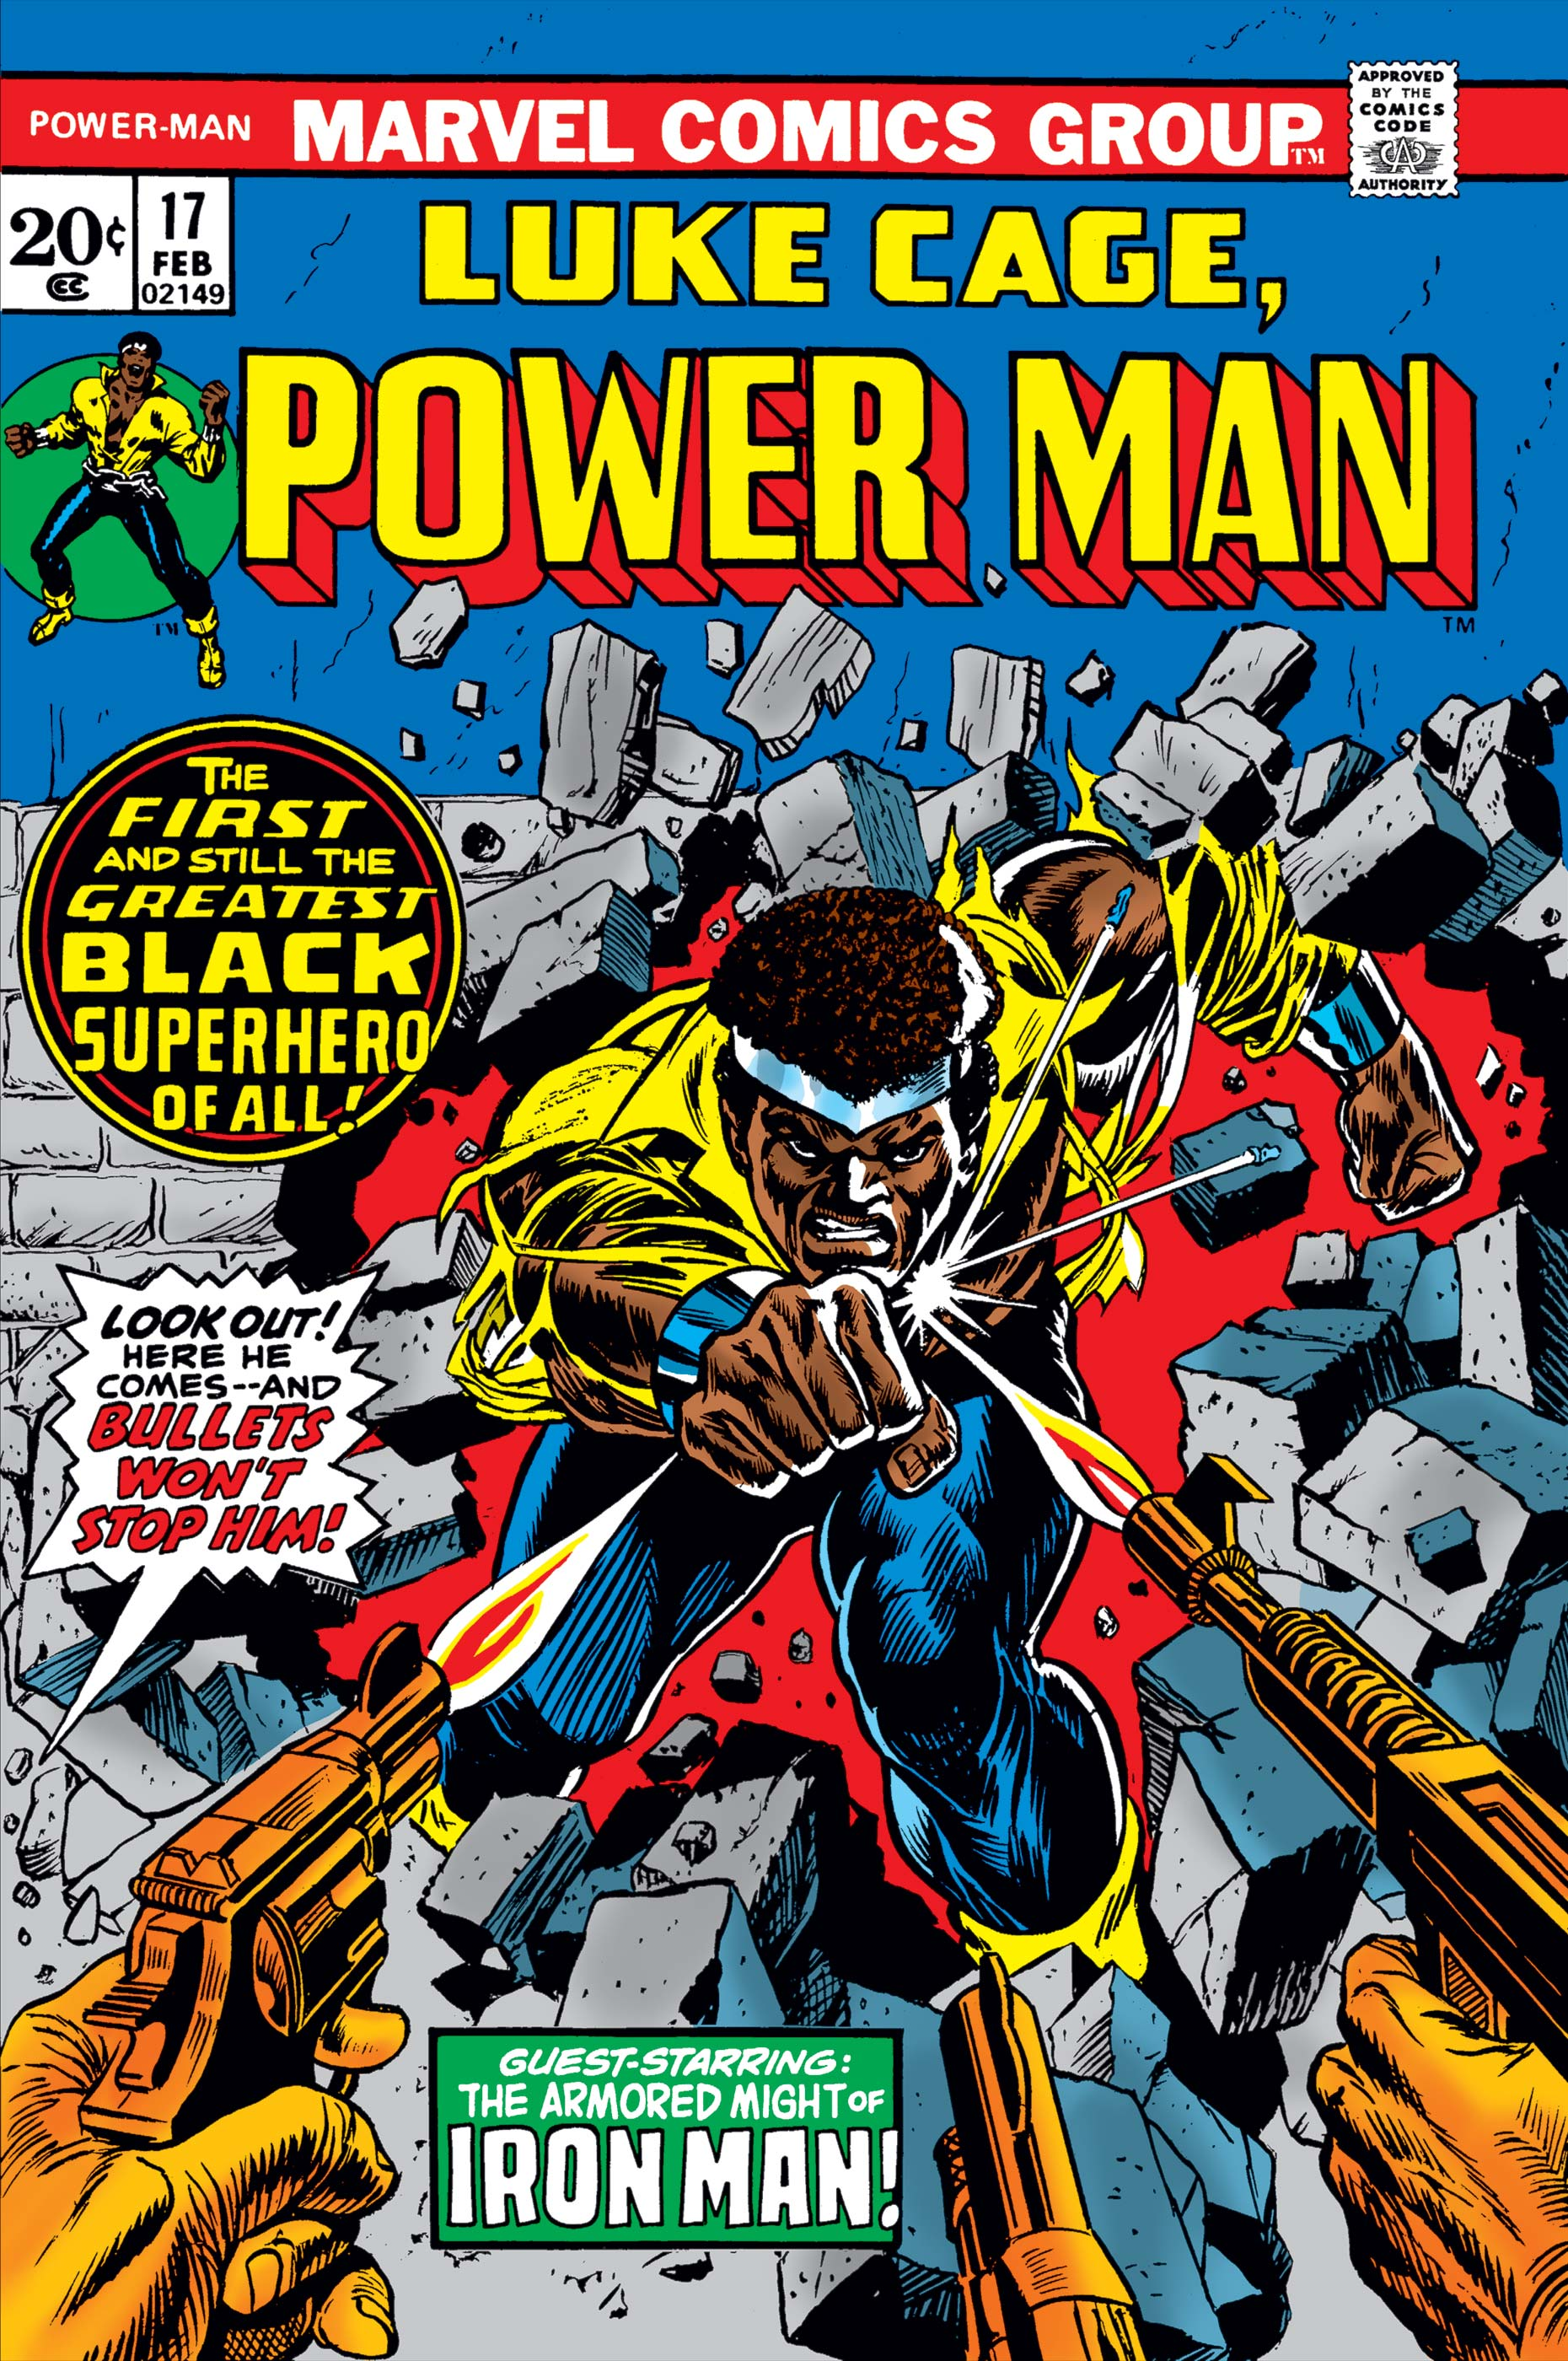 Power Man (1974) #17